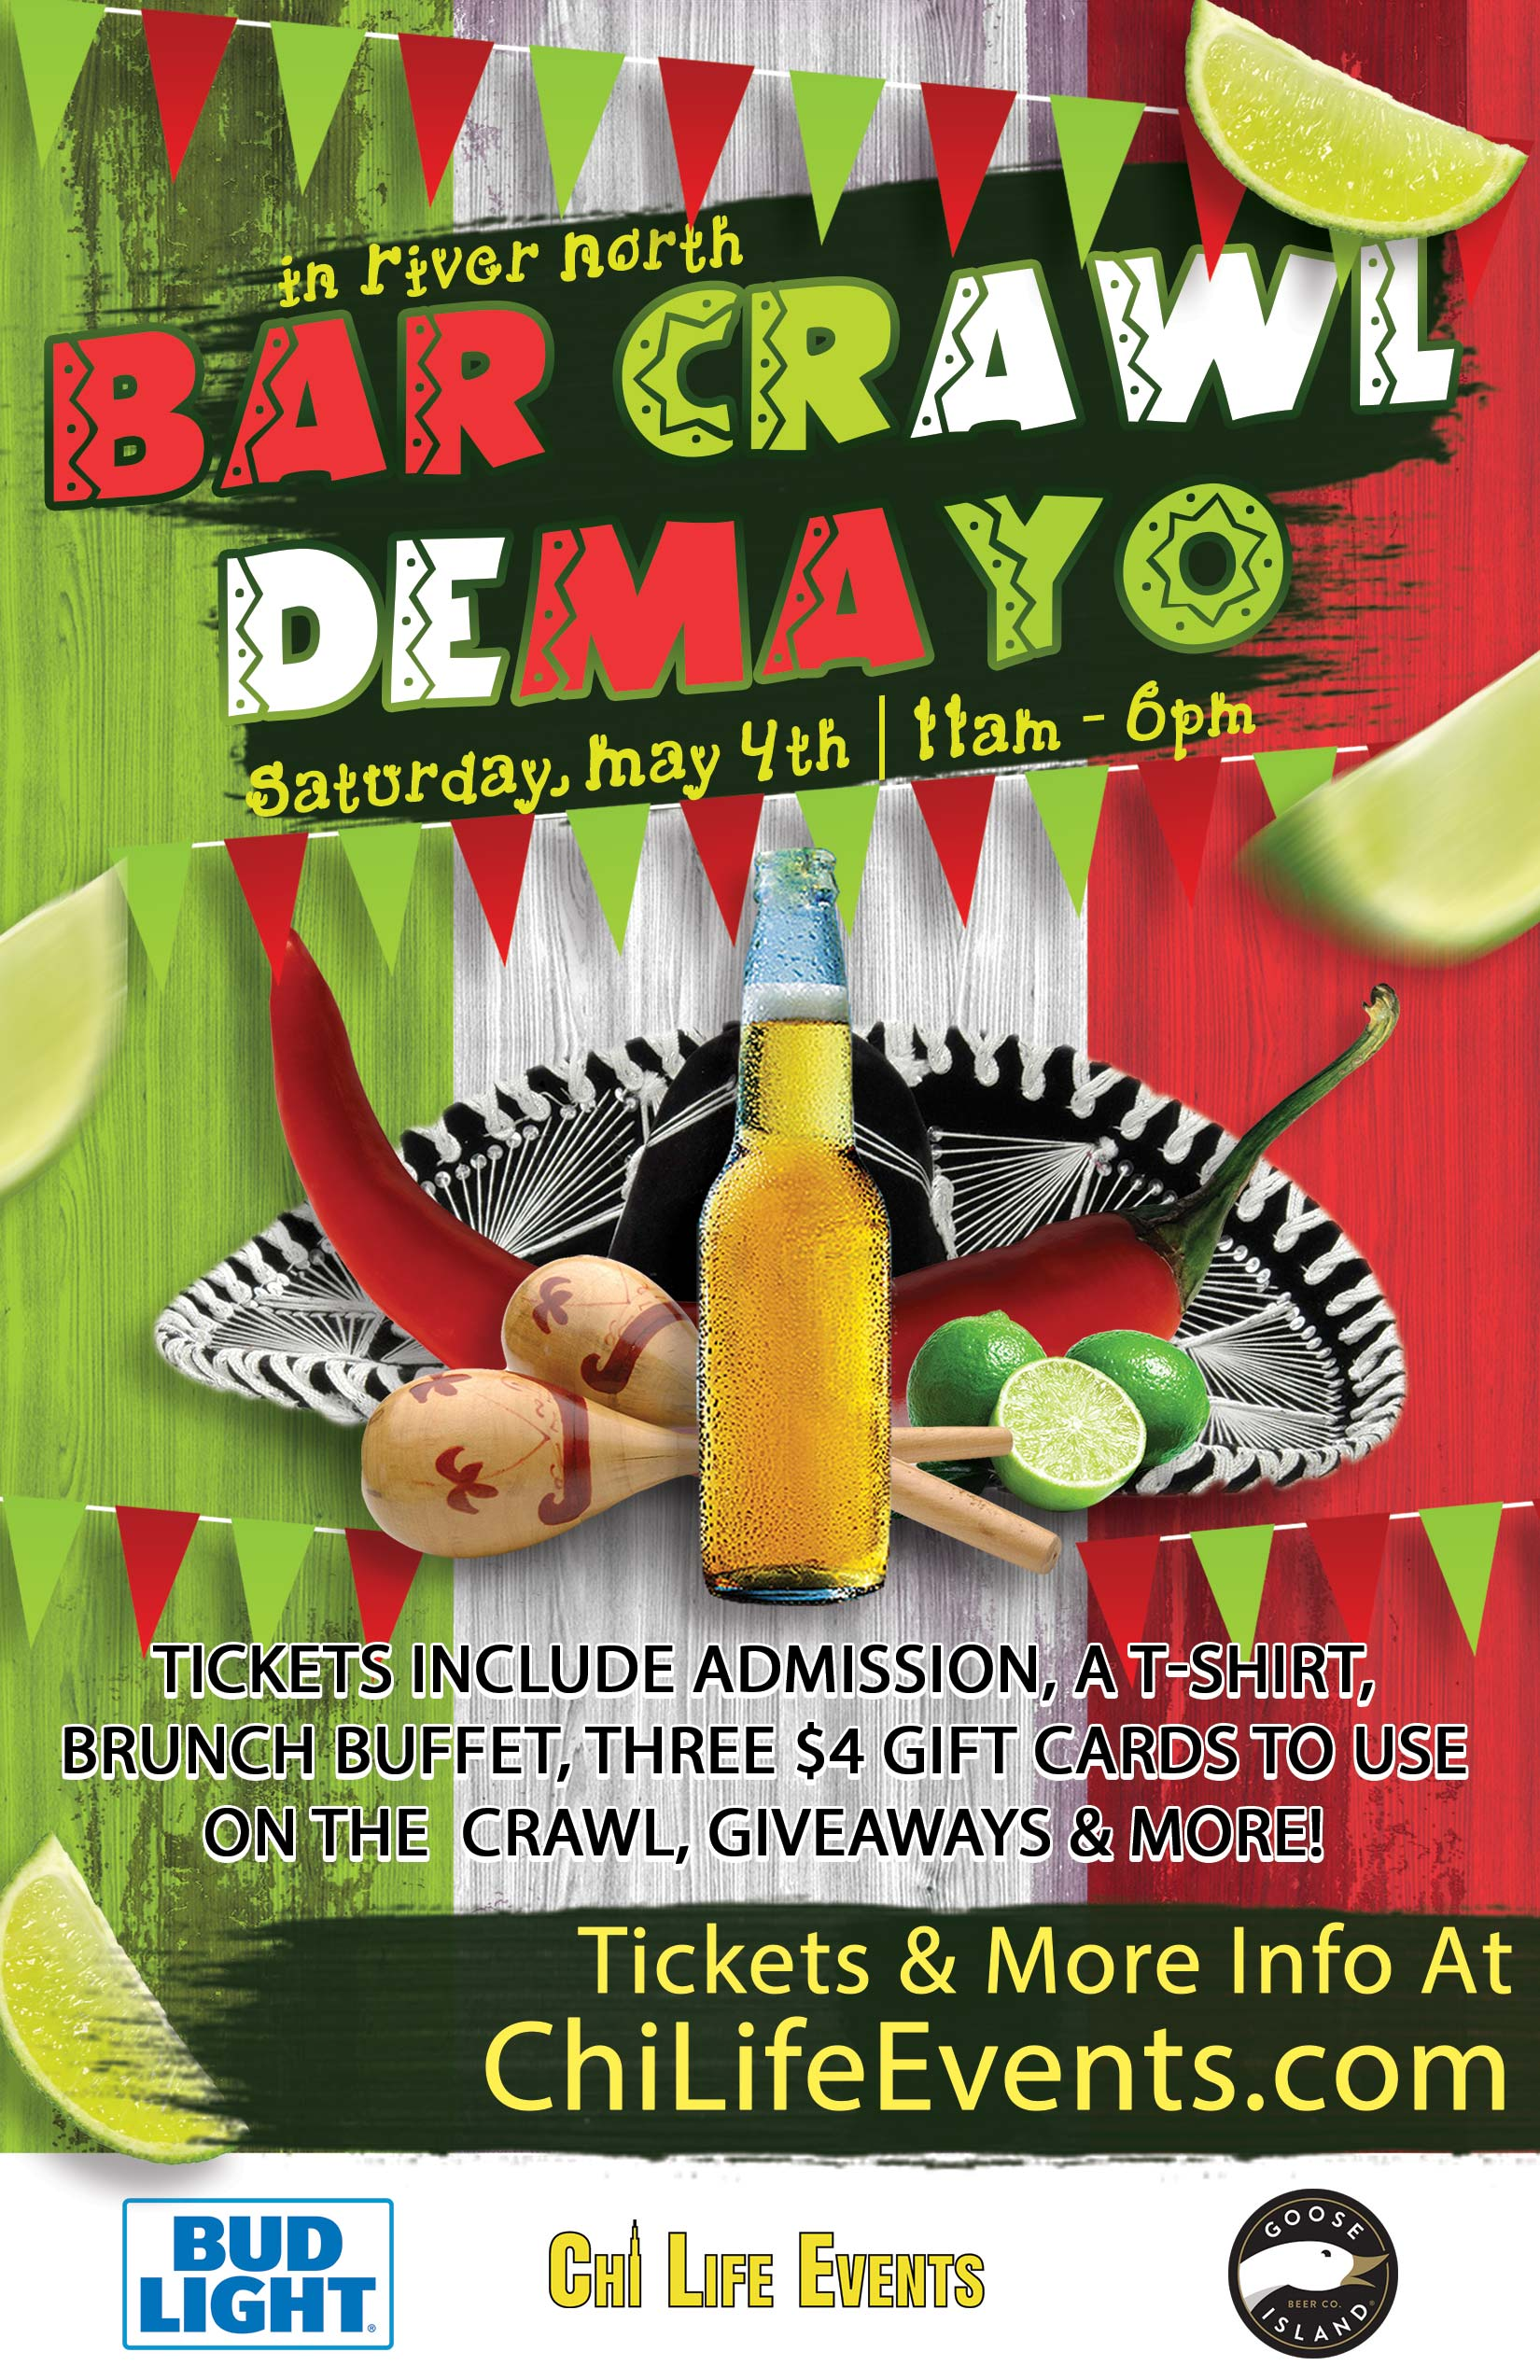 Cinco de Mayo Bar Crawl Party in River North - Tickets include Admission, a T-Shirt, a Brunch Buffet, three $4 Gift Cards to Use on the Crawl, Giveaways & MORE!